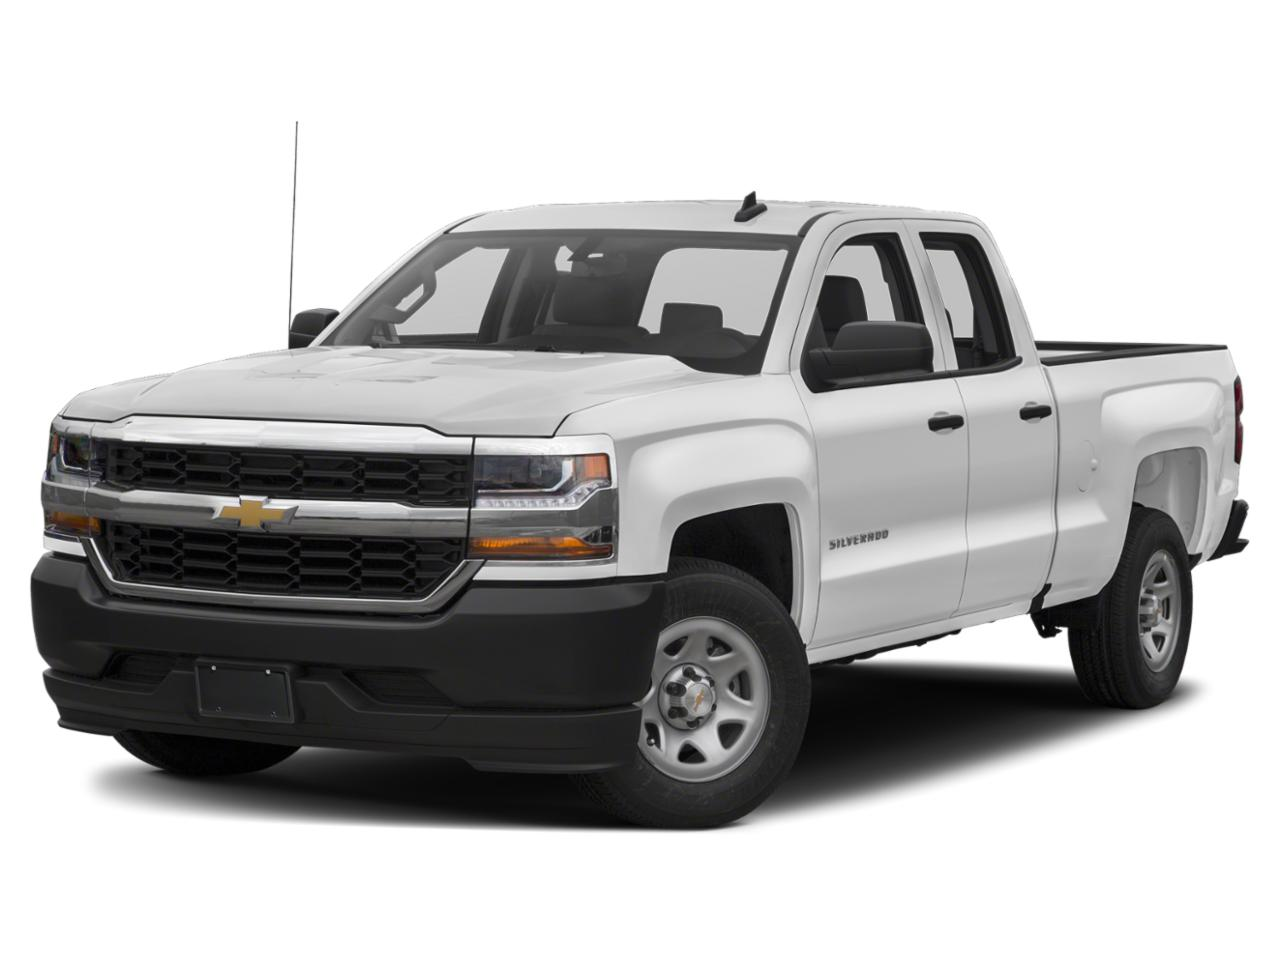 2019 Chevrolet Silverado 1500 LD Vehicle Photo in Willoughby Hills, OH 44092